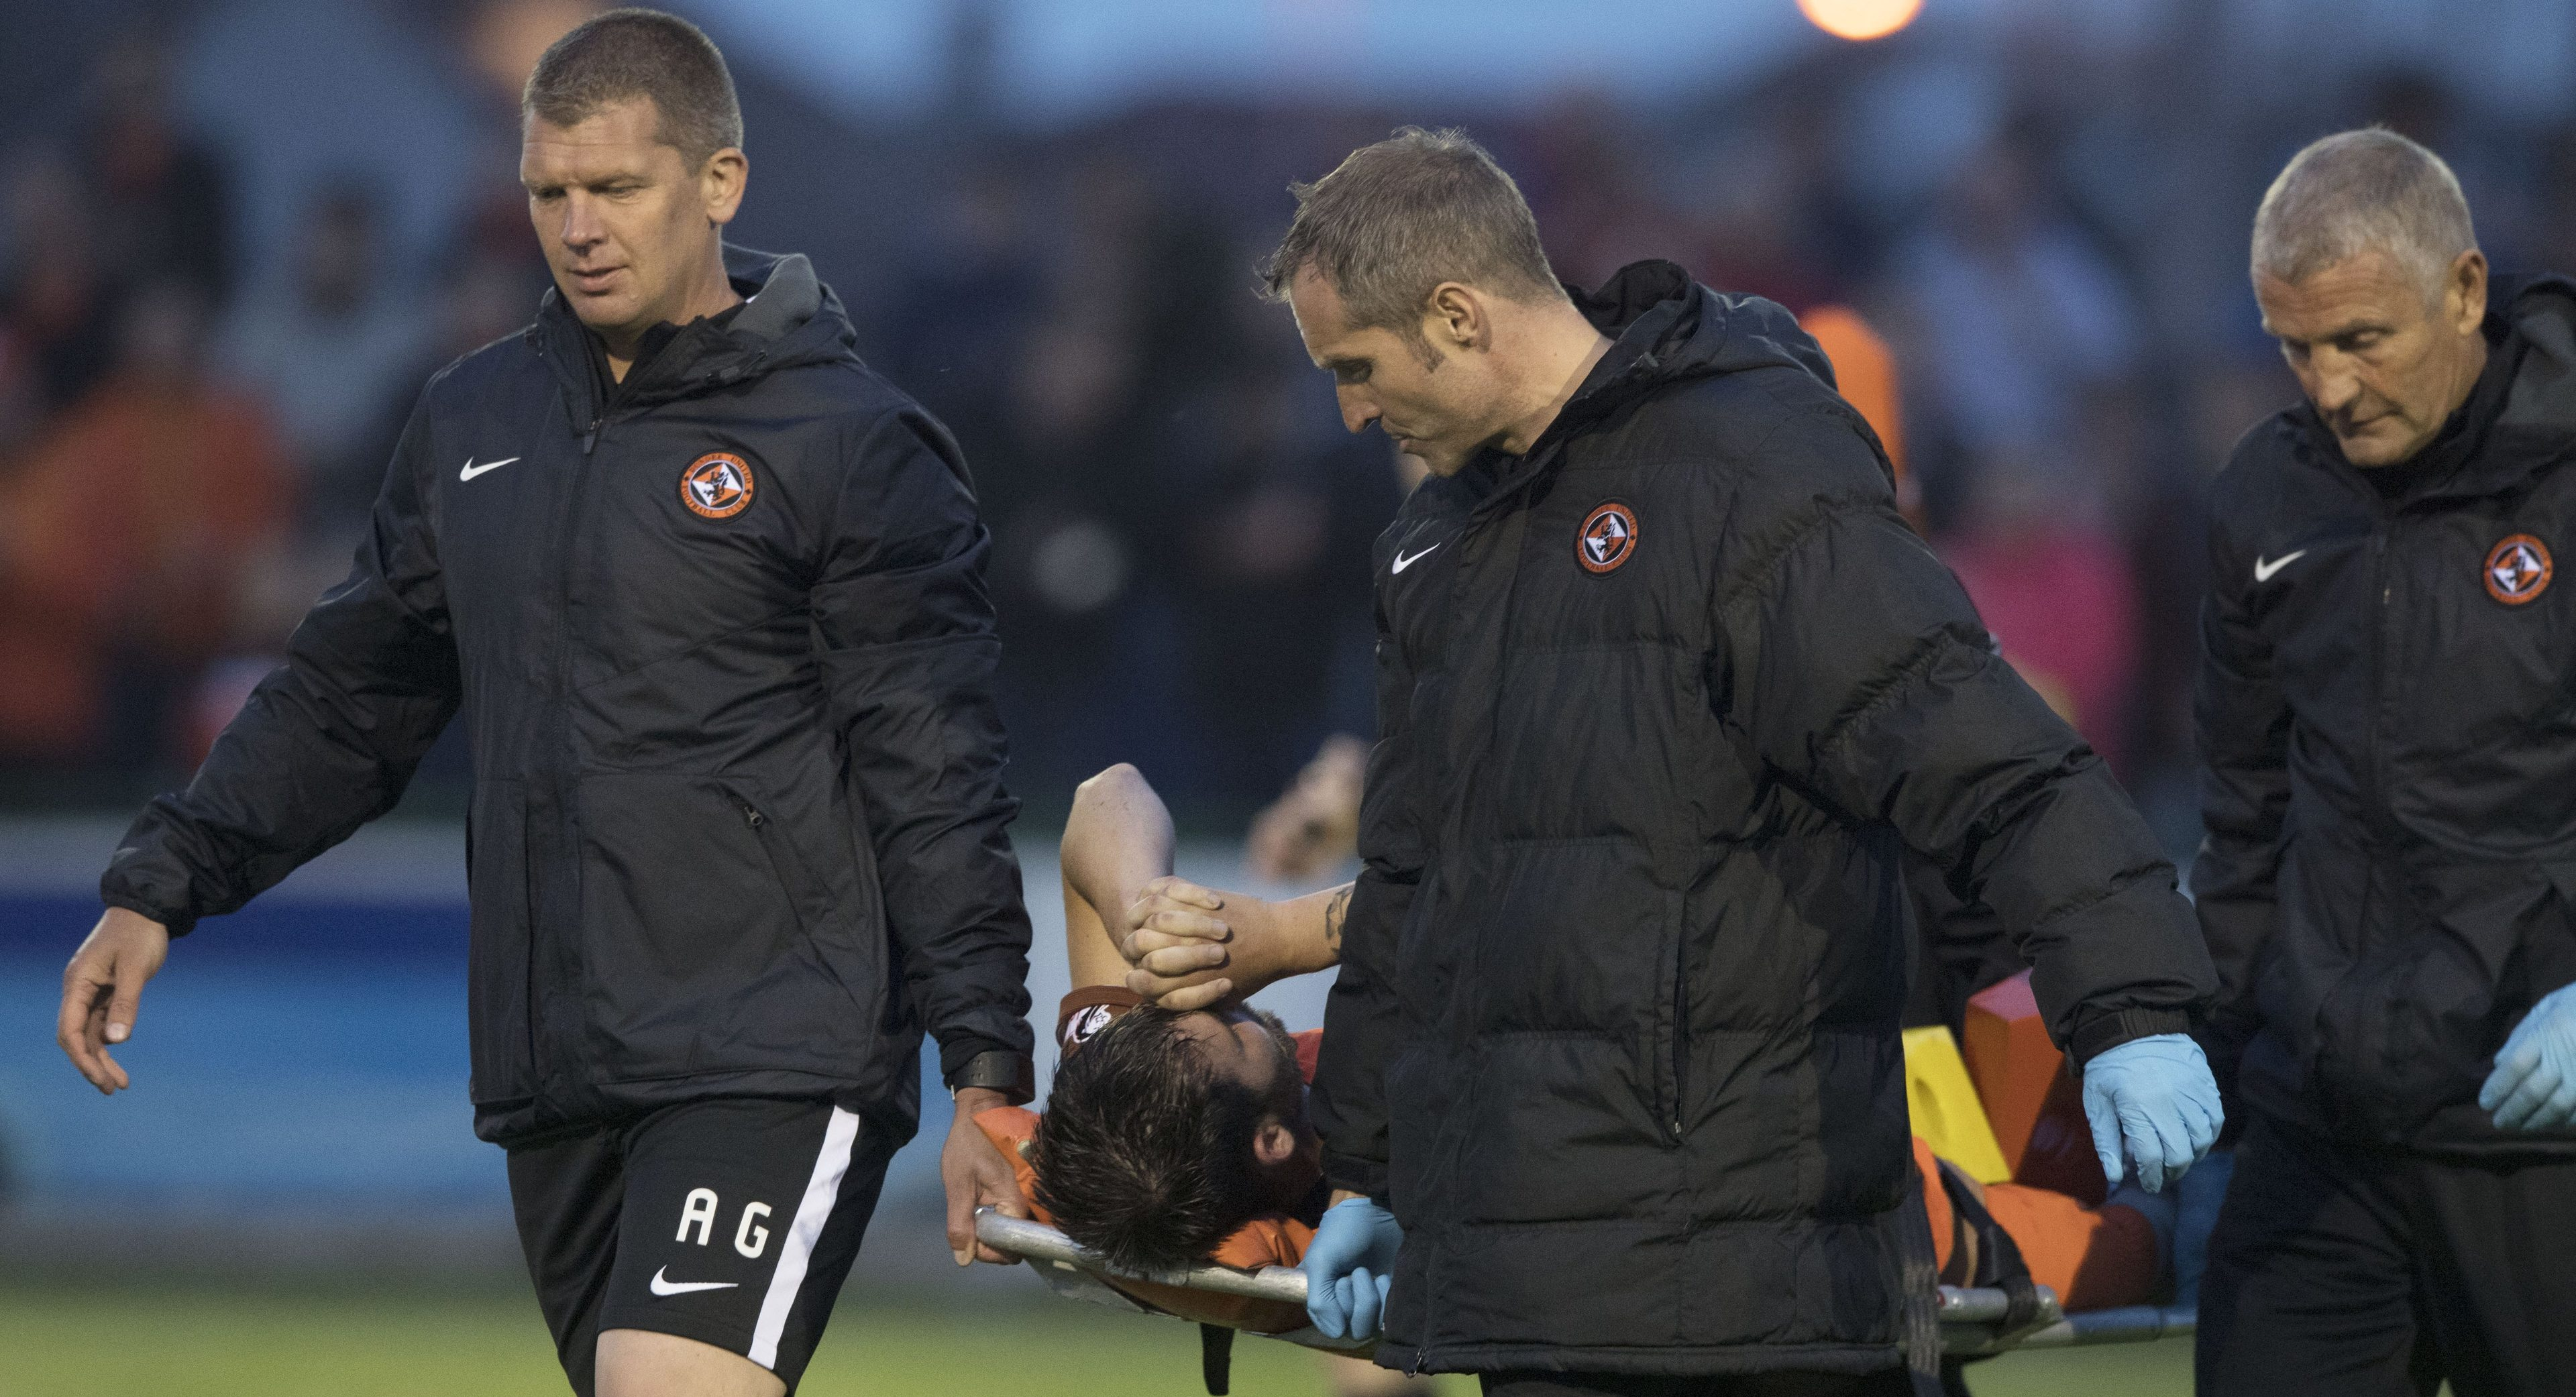 Dundee United's James Keatings is stretchered off at Buckie.